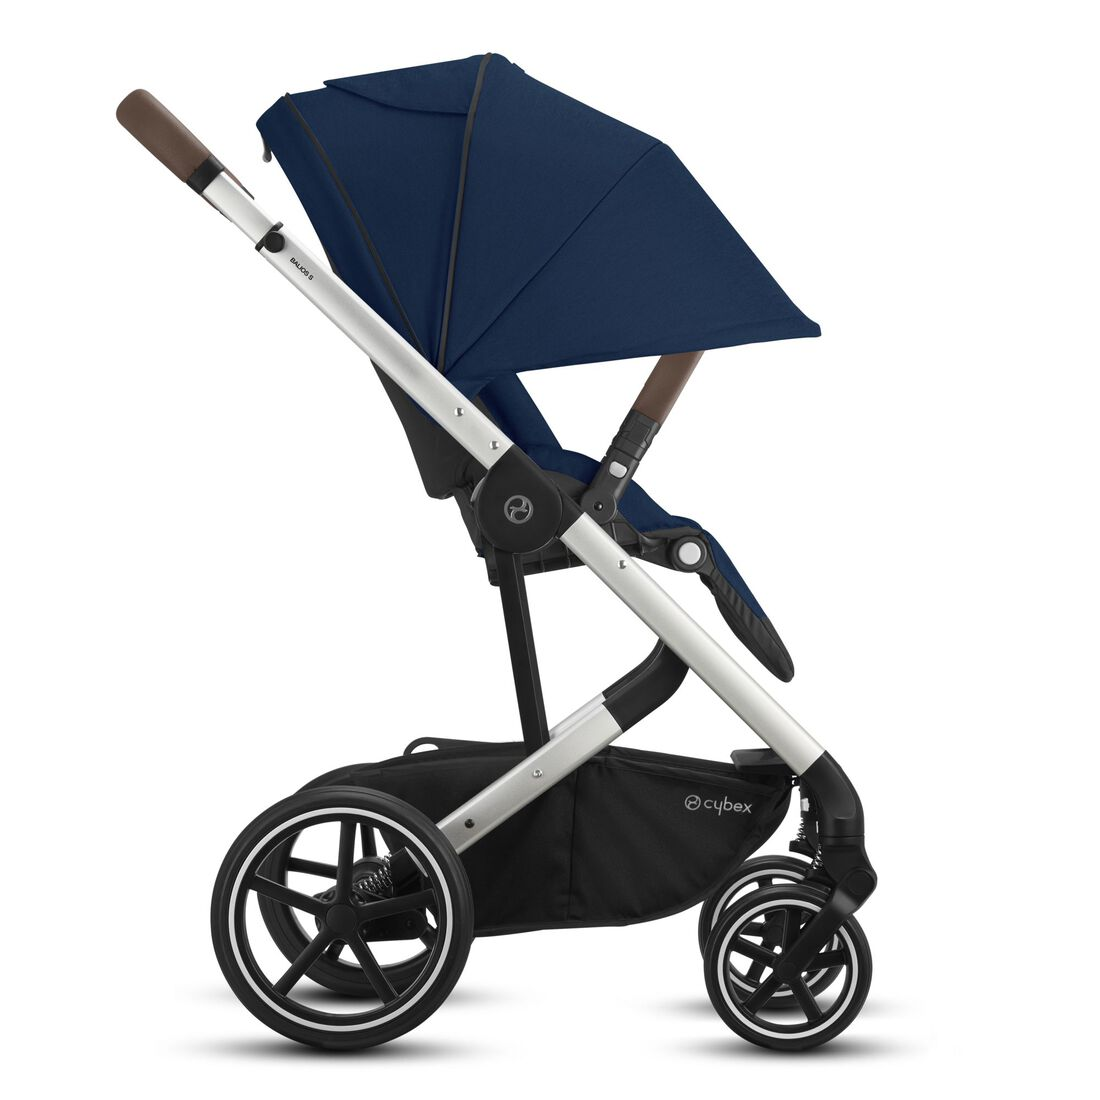 CYBEX Balios S Lux - Navy Blue (Silver Frame) in Navy Blue (Silver Frame) large image number 5